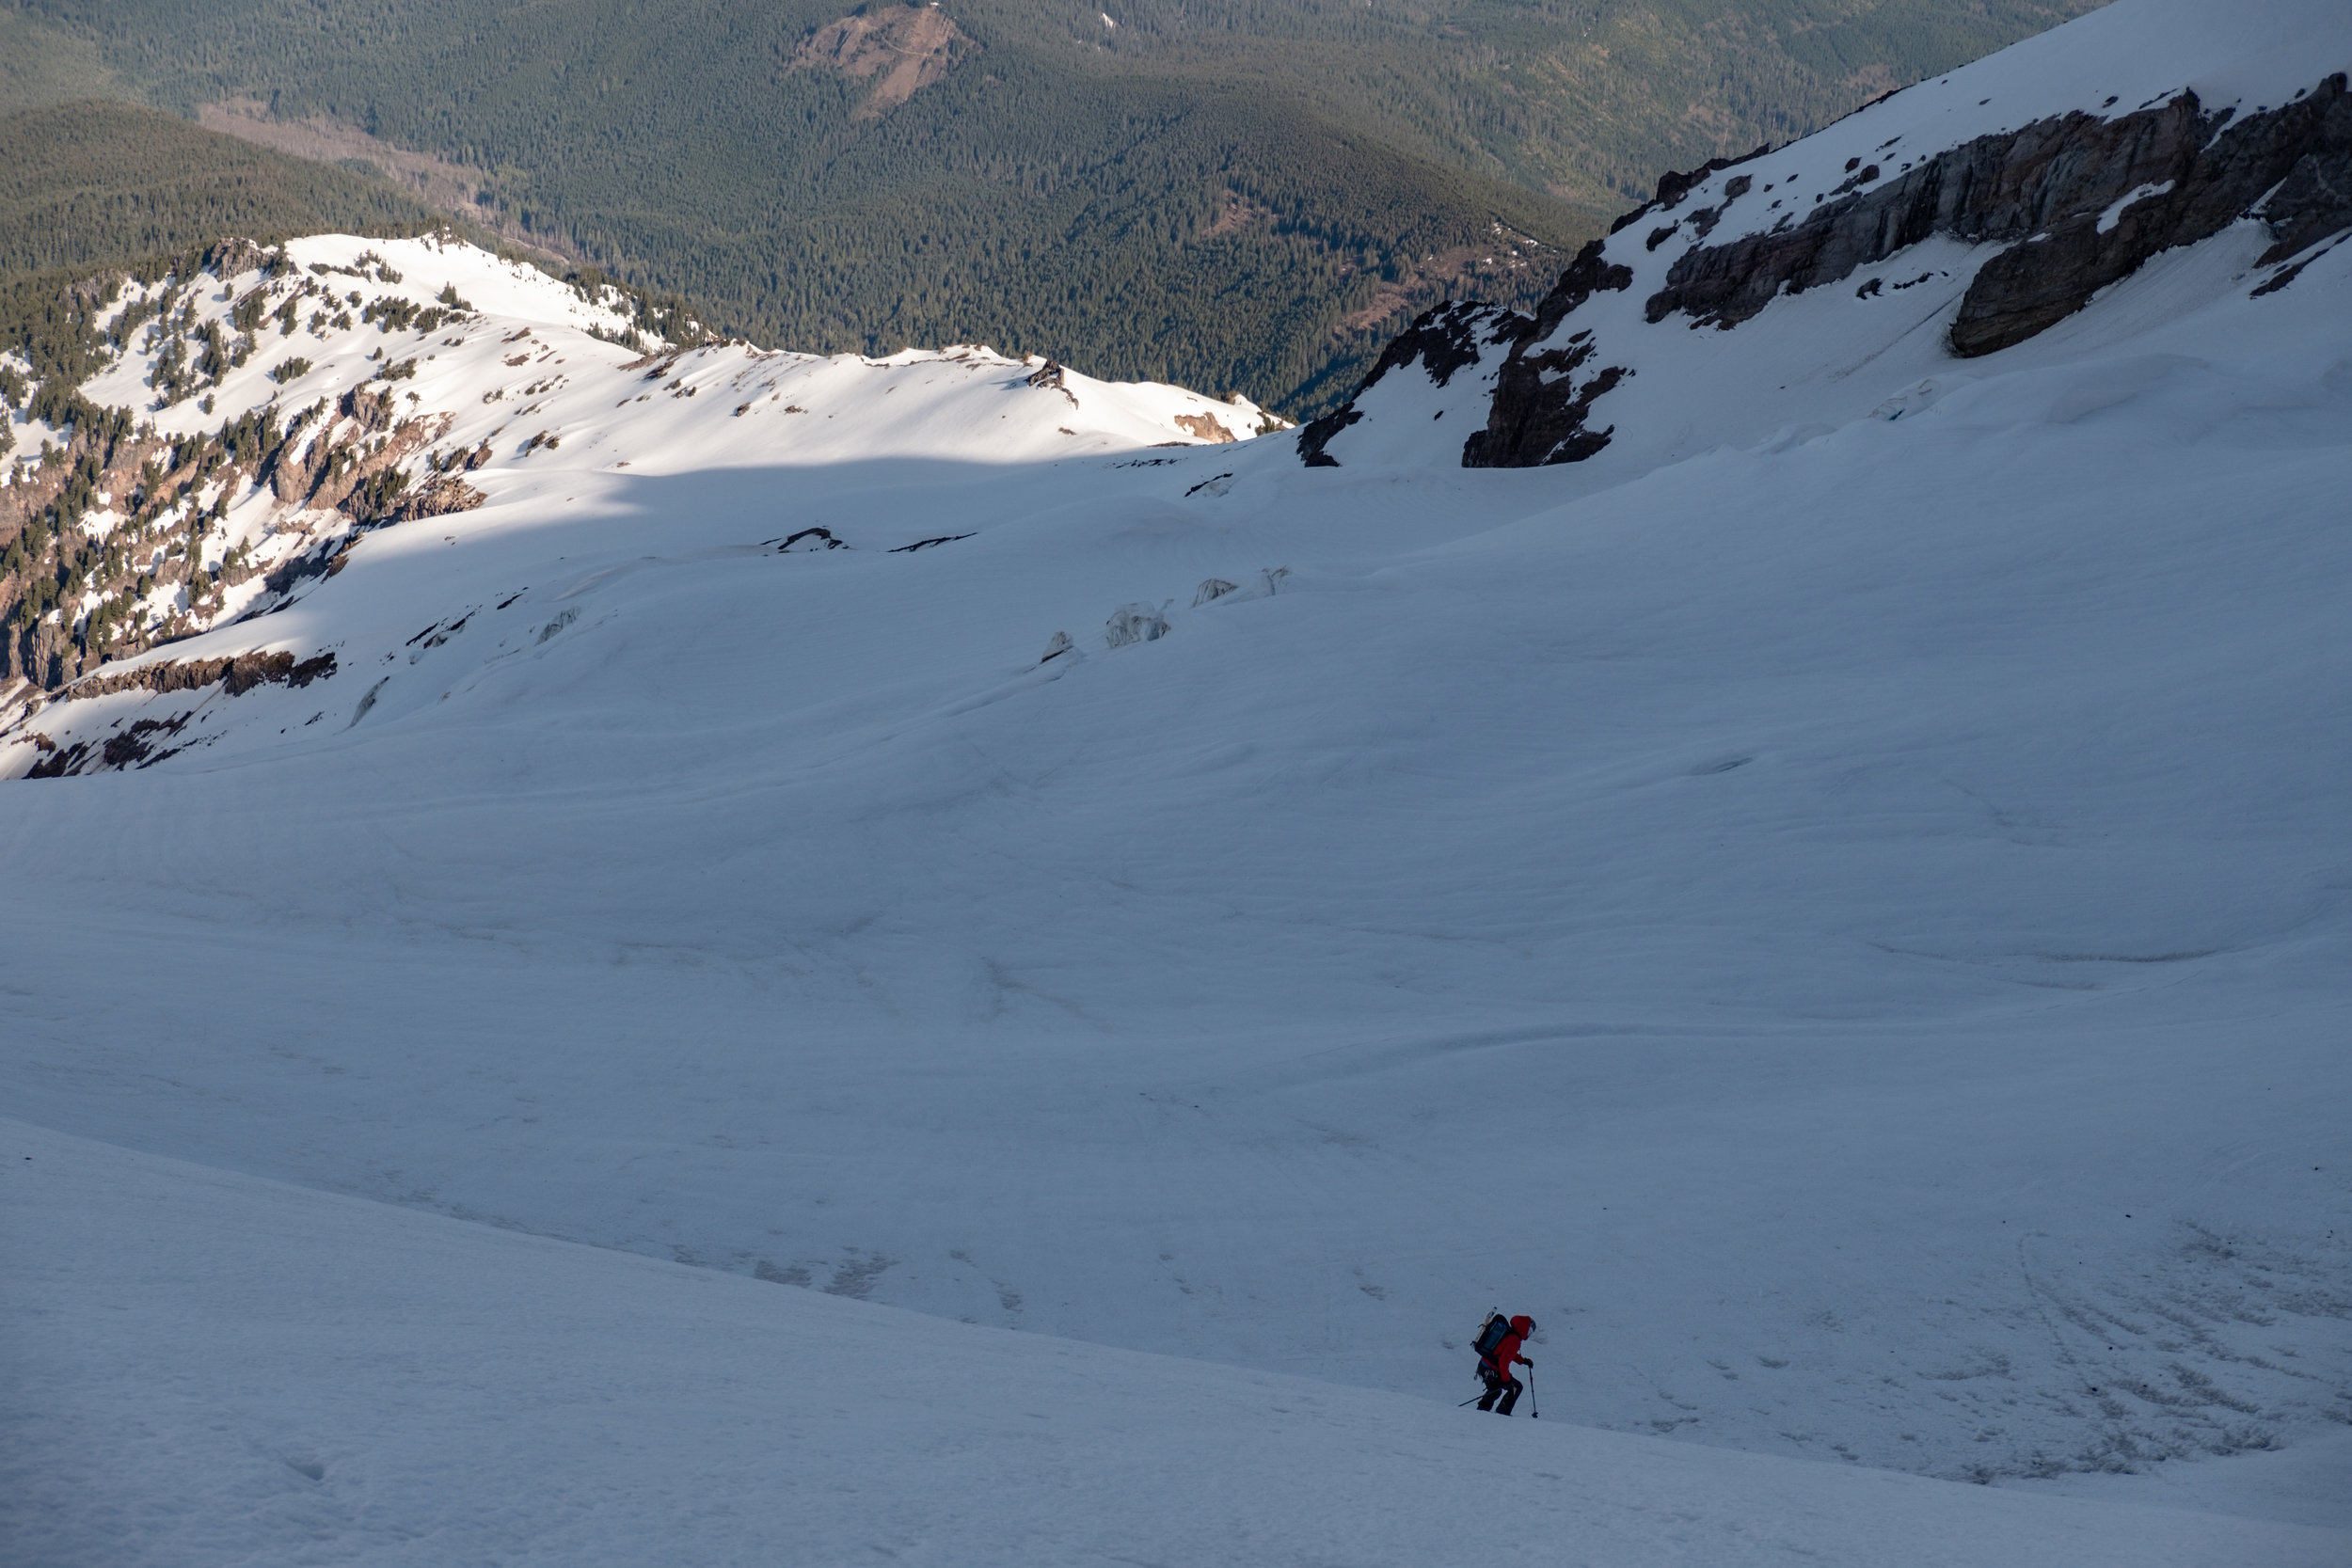 lower Reid Glacier - be mindful of crevasses and choose to traverse to Yokum Ridge where it looks good